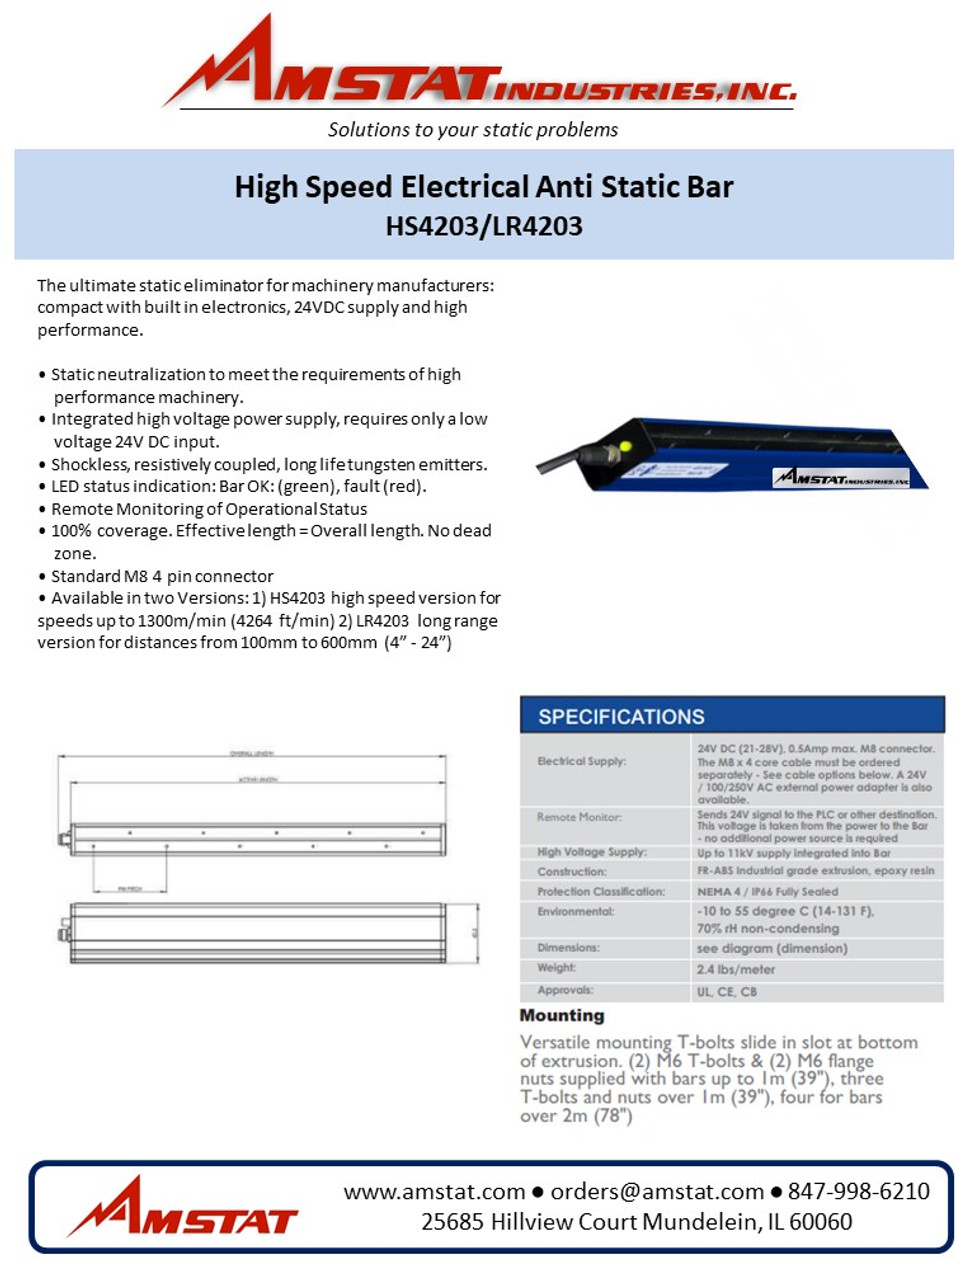 Long Range Electrical Anti Static Bar